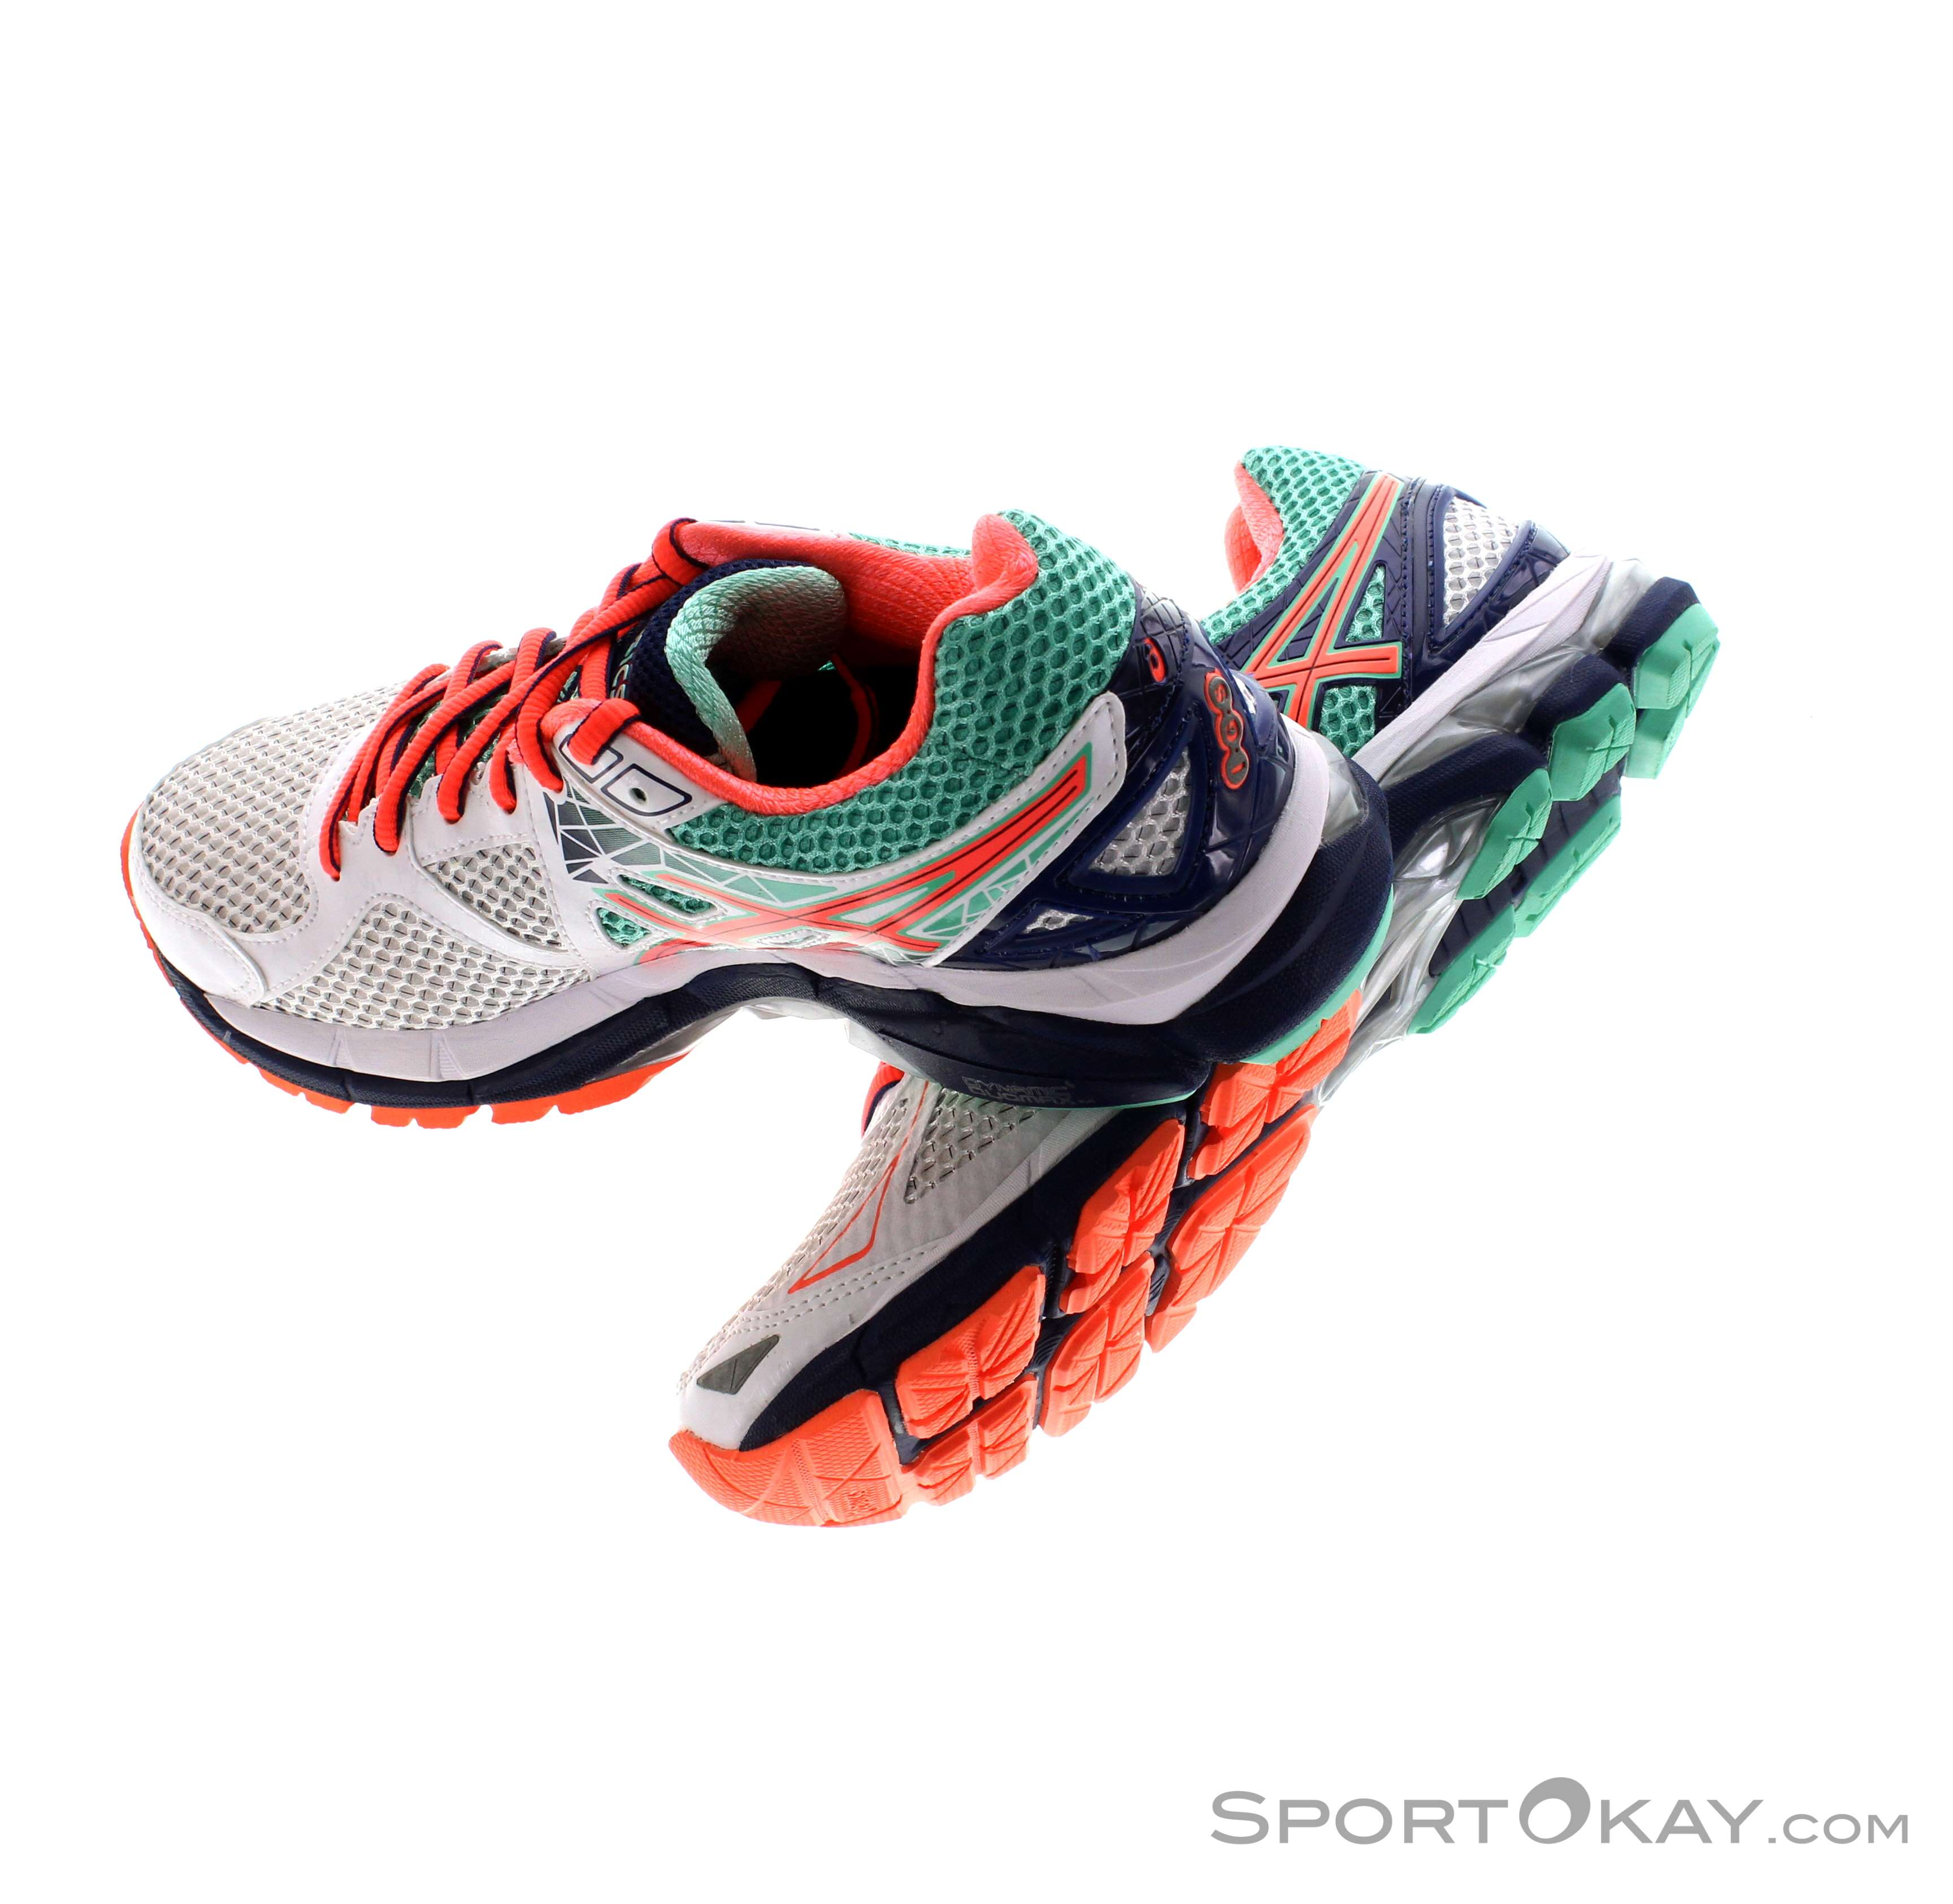 nike shoes 99999999 number 941598